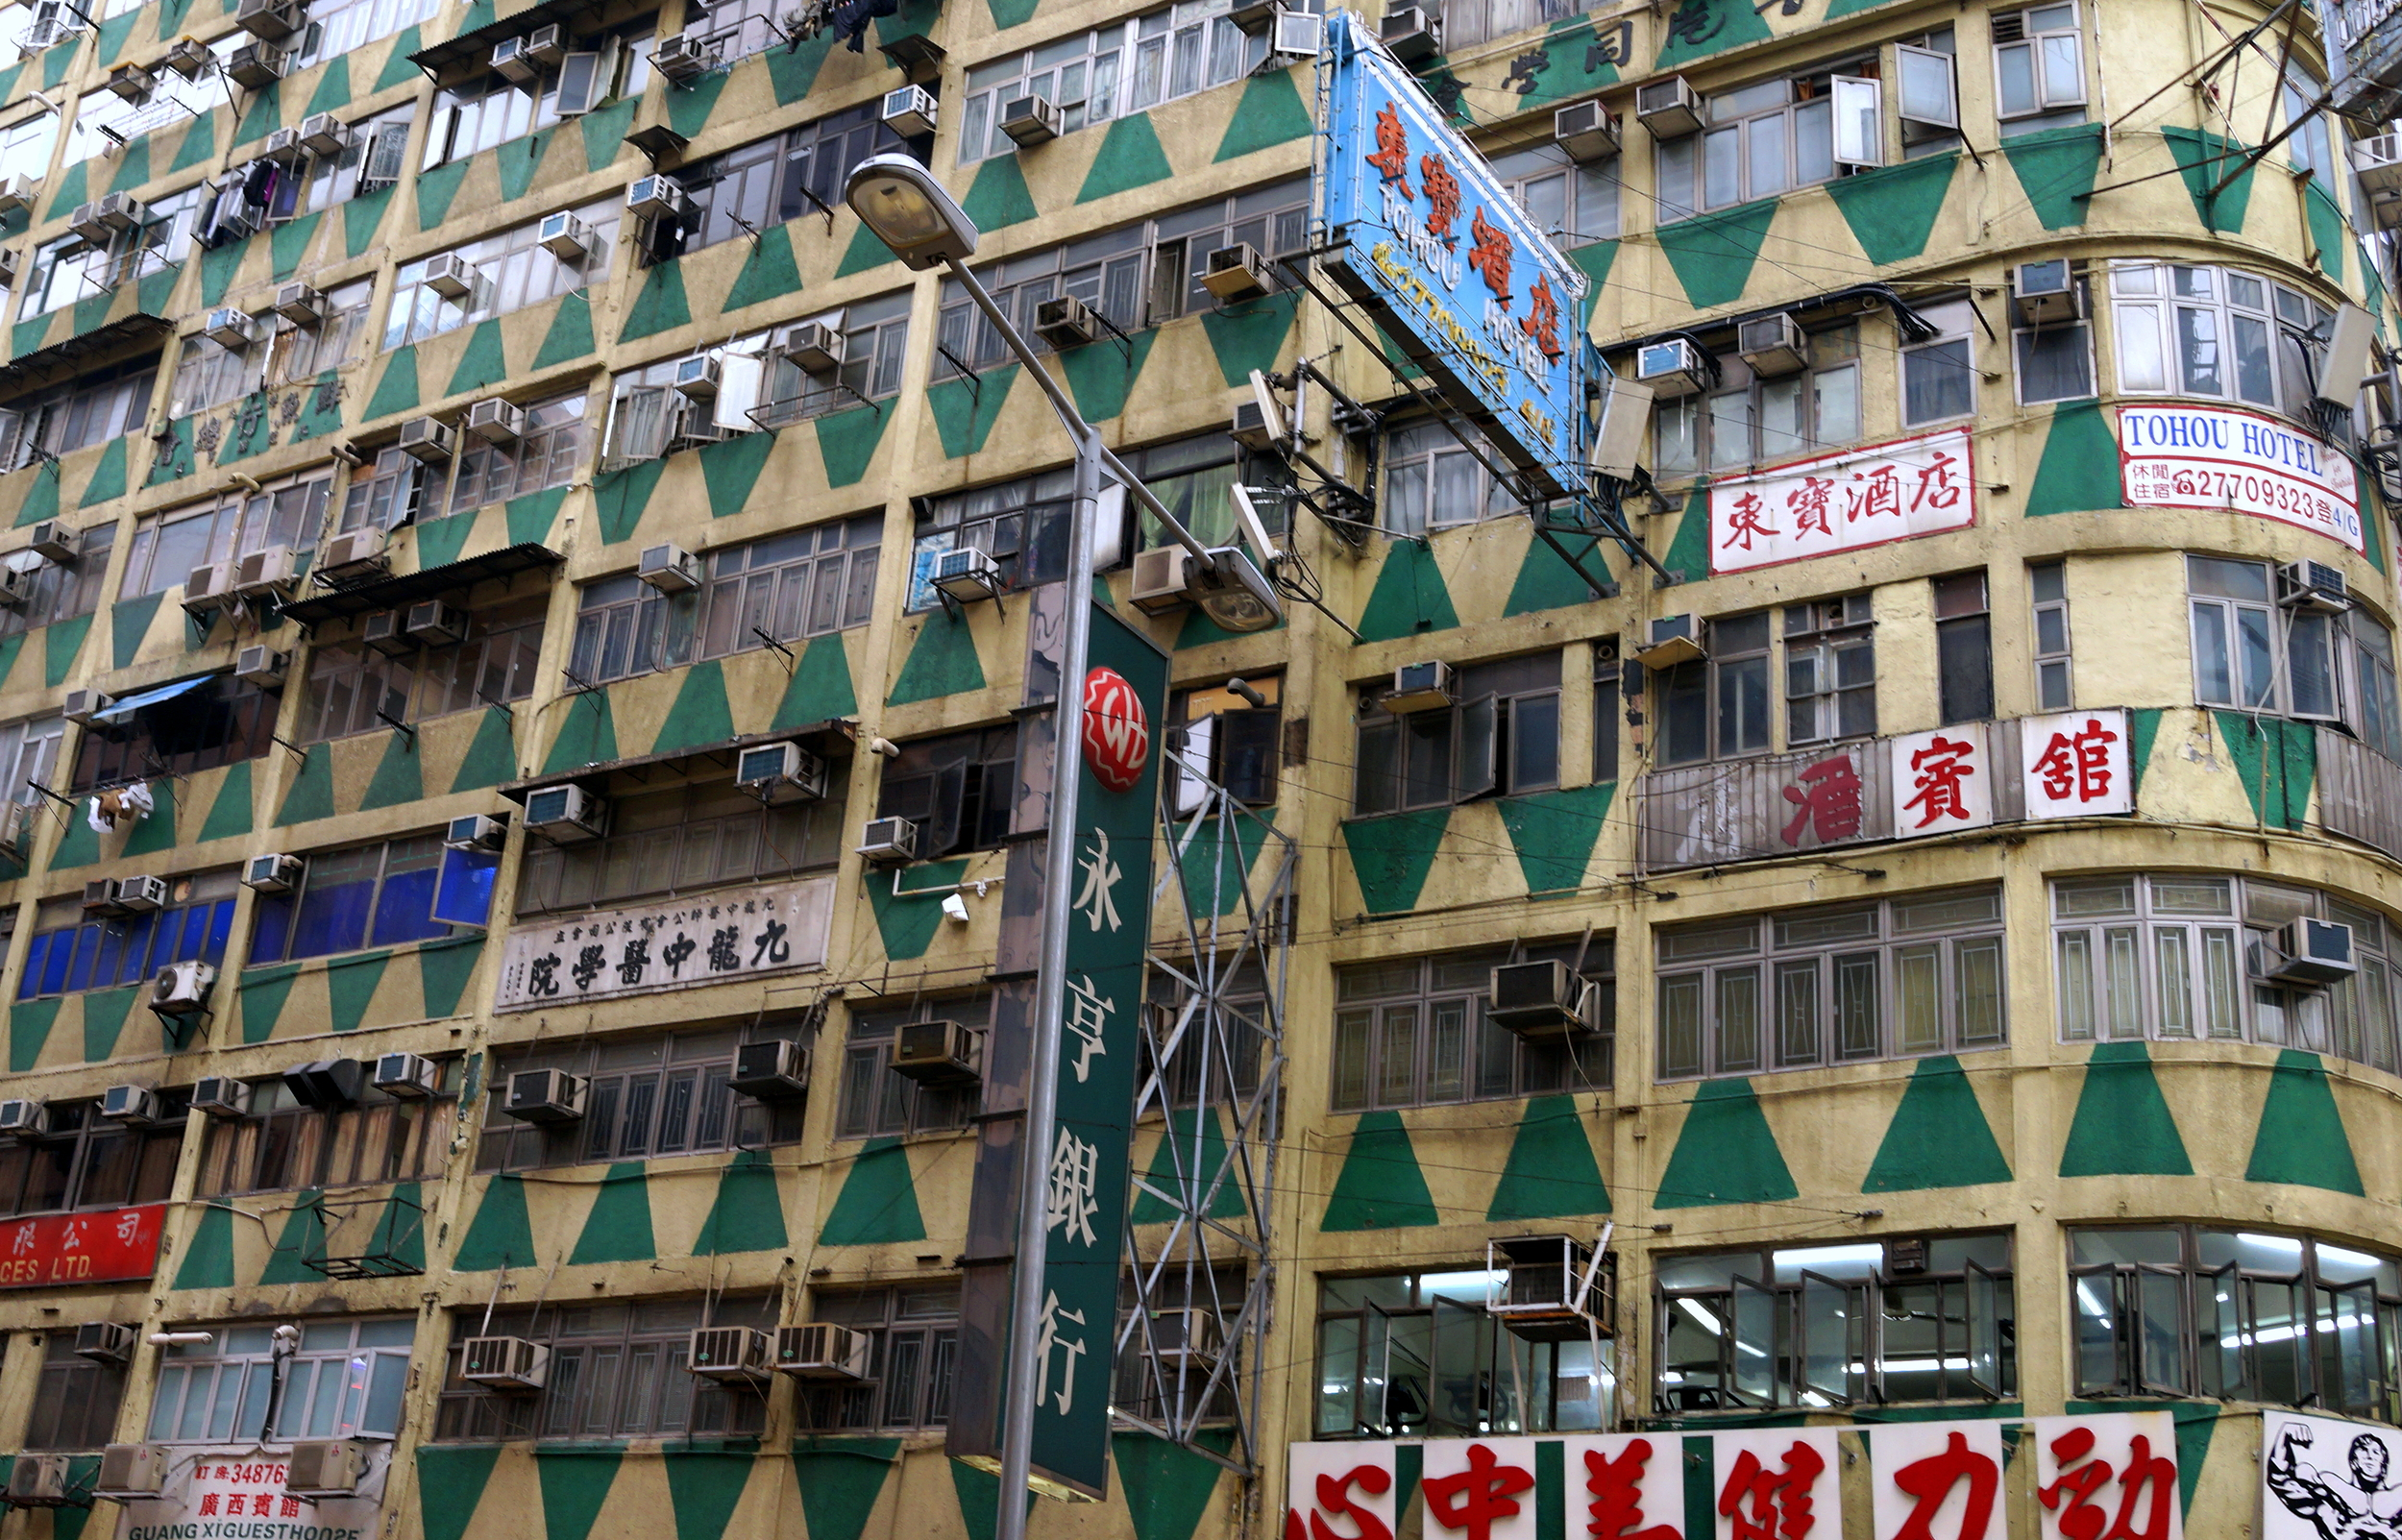 They don't make buildings like this anymore, this one is located at the junction of Nathan Road and Jordan Road in Kowloon. Vintage 1960's.